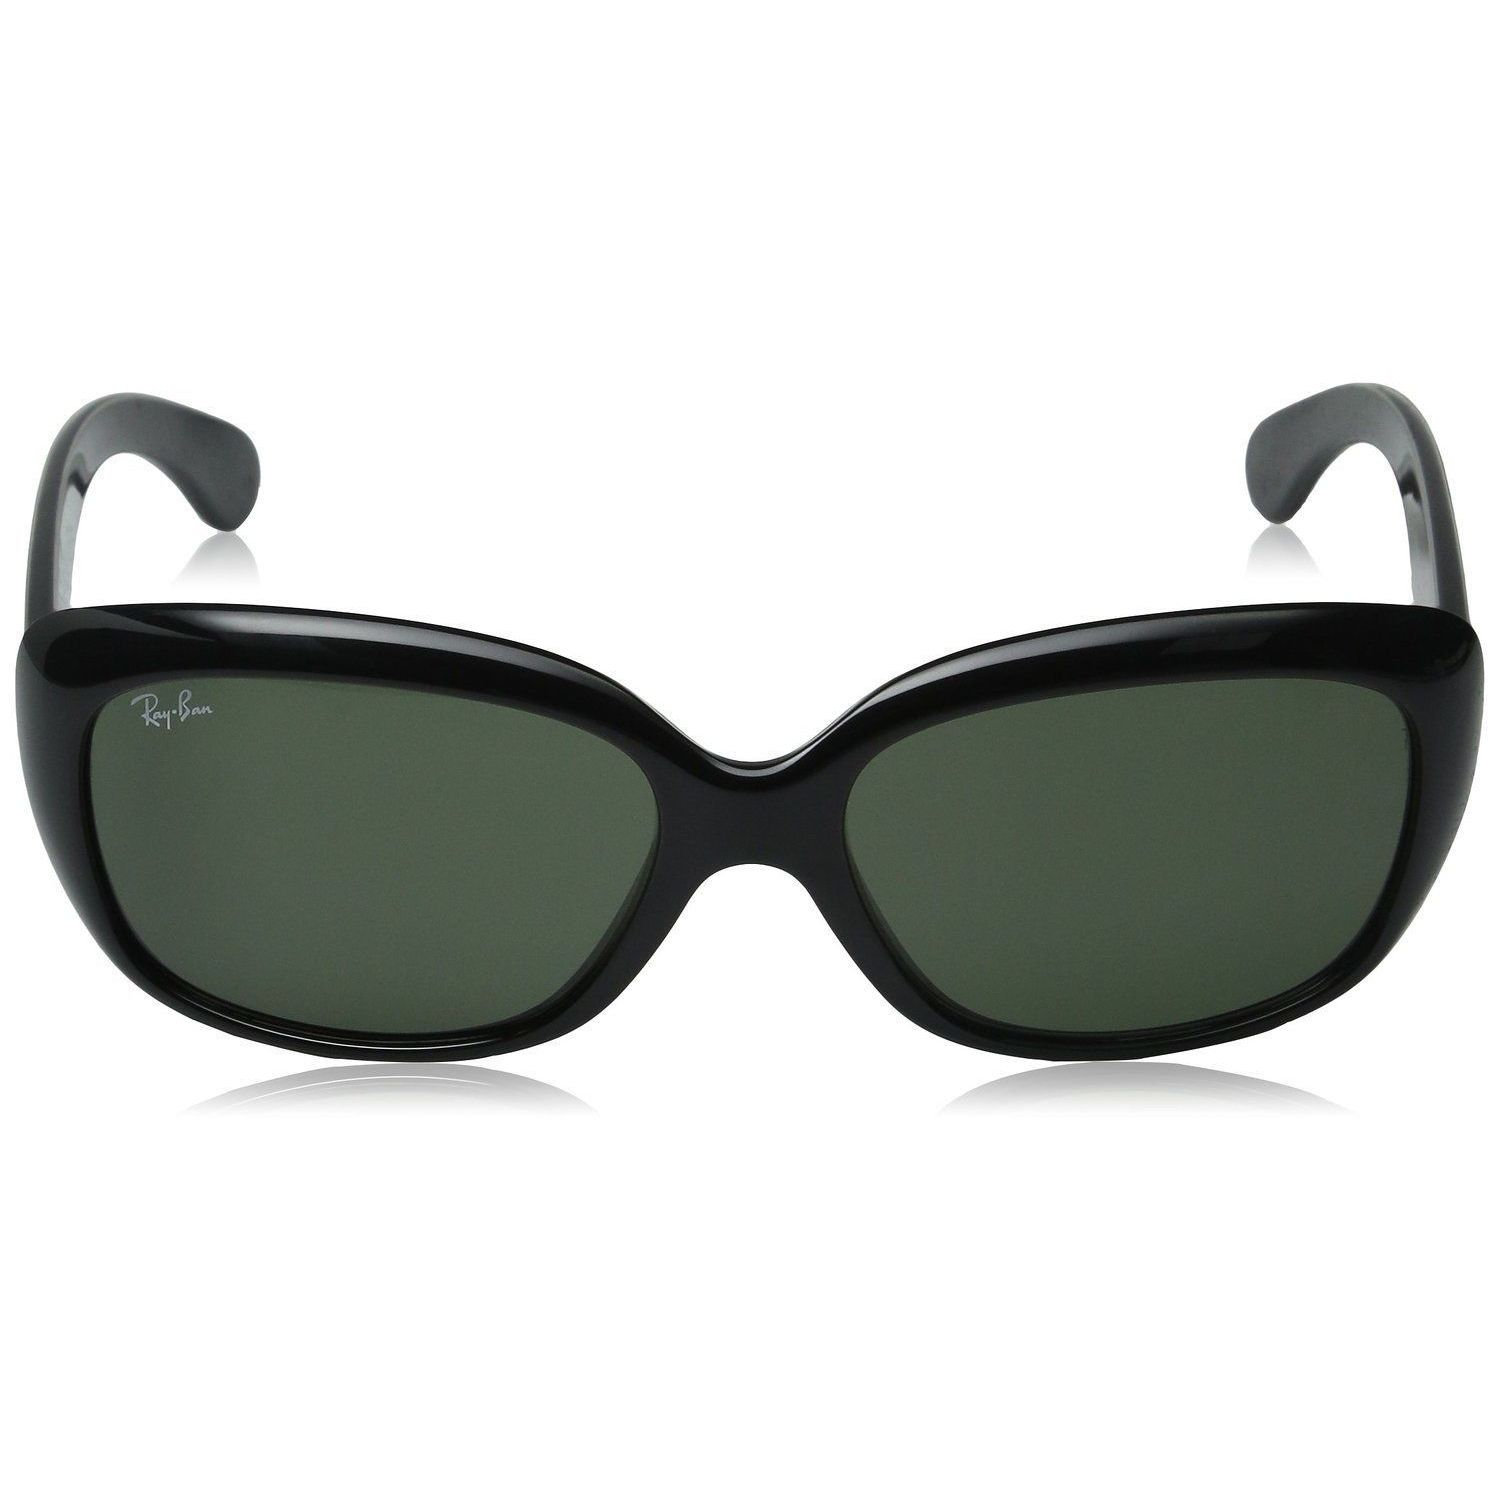 bf1f063b6a Shop Ray-Ban Jackie Ohh RB4101 Women s Black Frame Green Lens Sunglasses -  Free Shipping Today - Overstock - 7586054